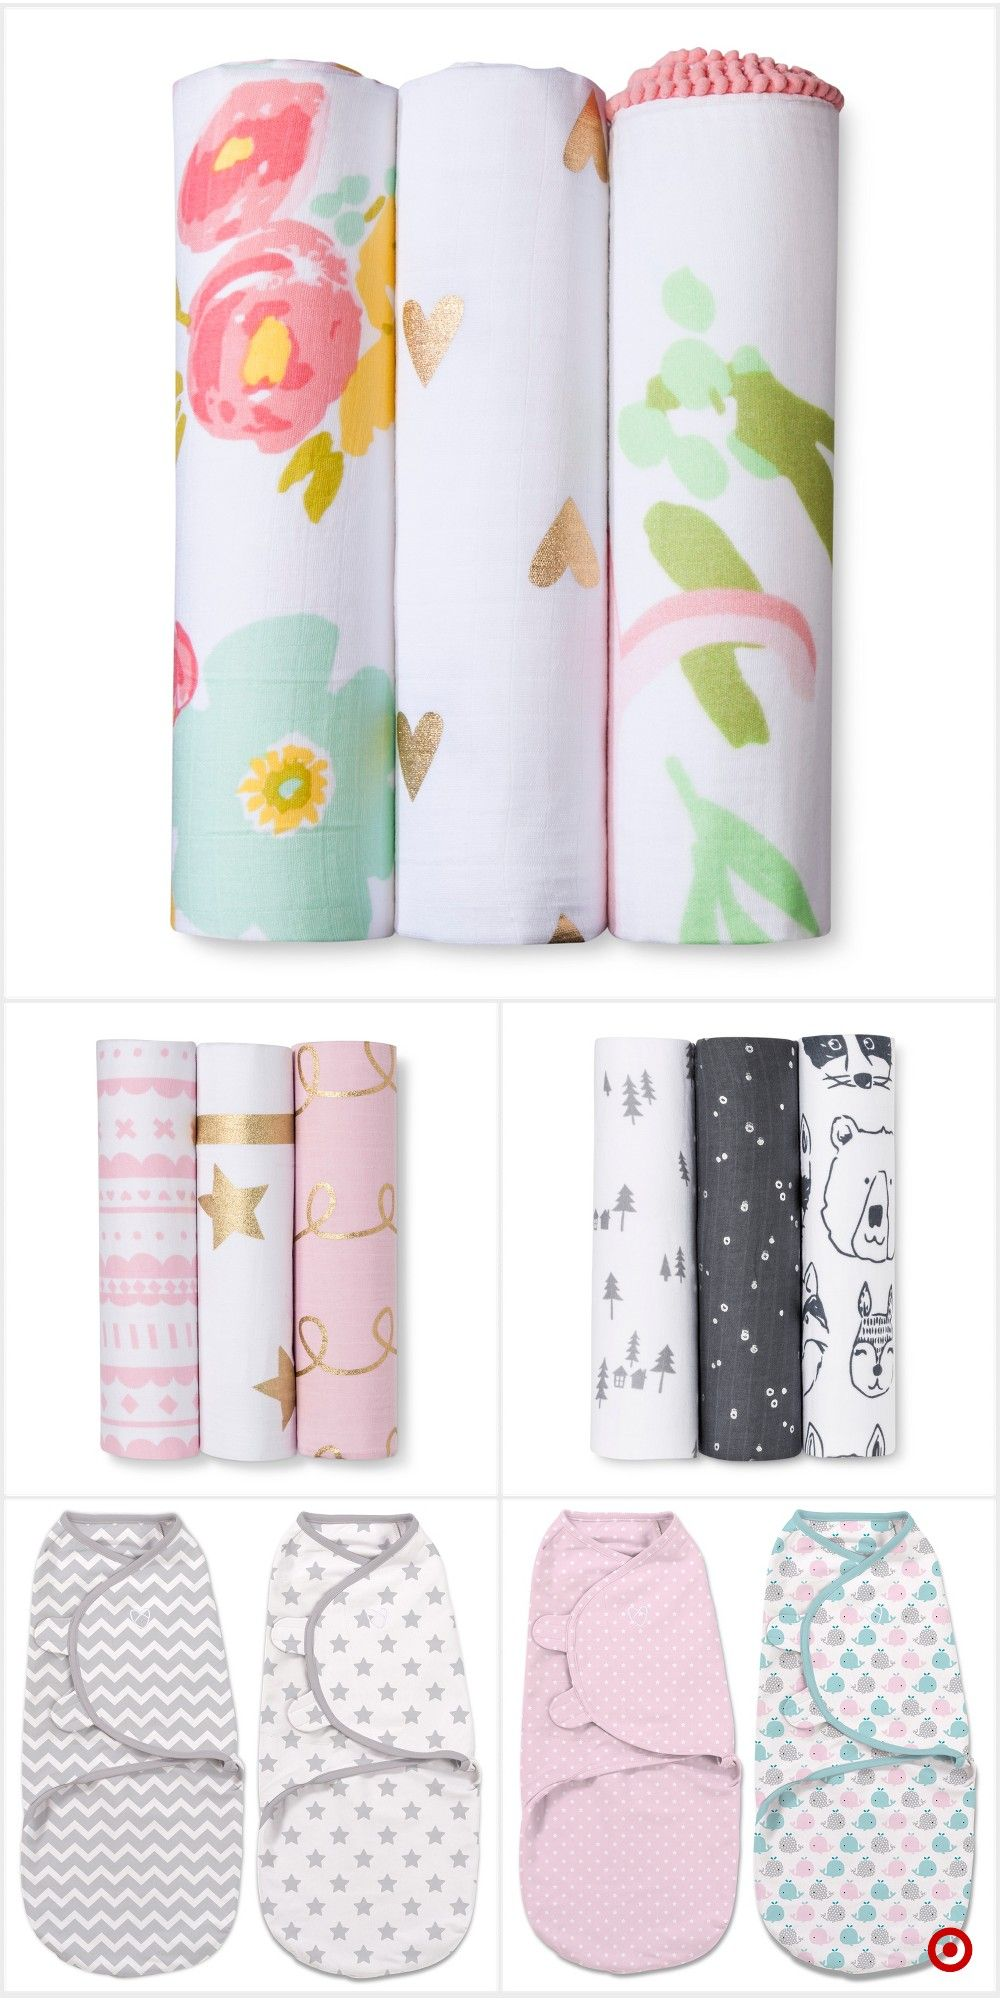 Swaddle Blankets Target Unique Shop Target For Swaddle Blanket You Will Love At Great Low Prices Inspiration Design